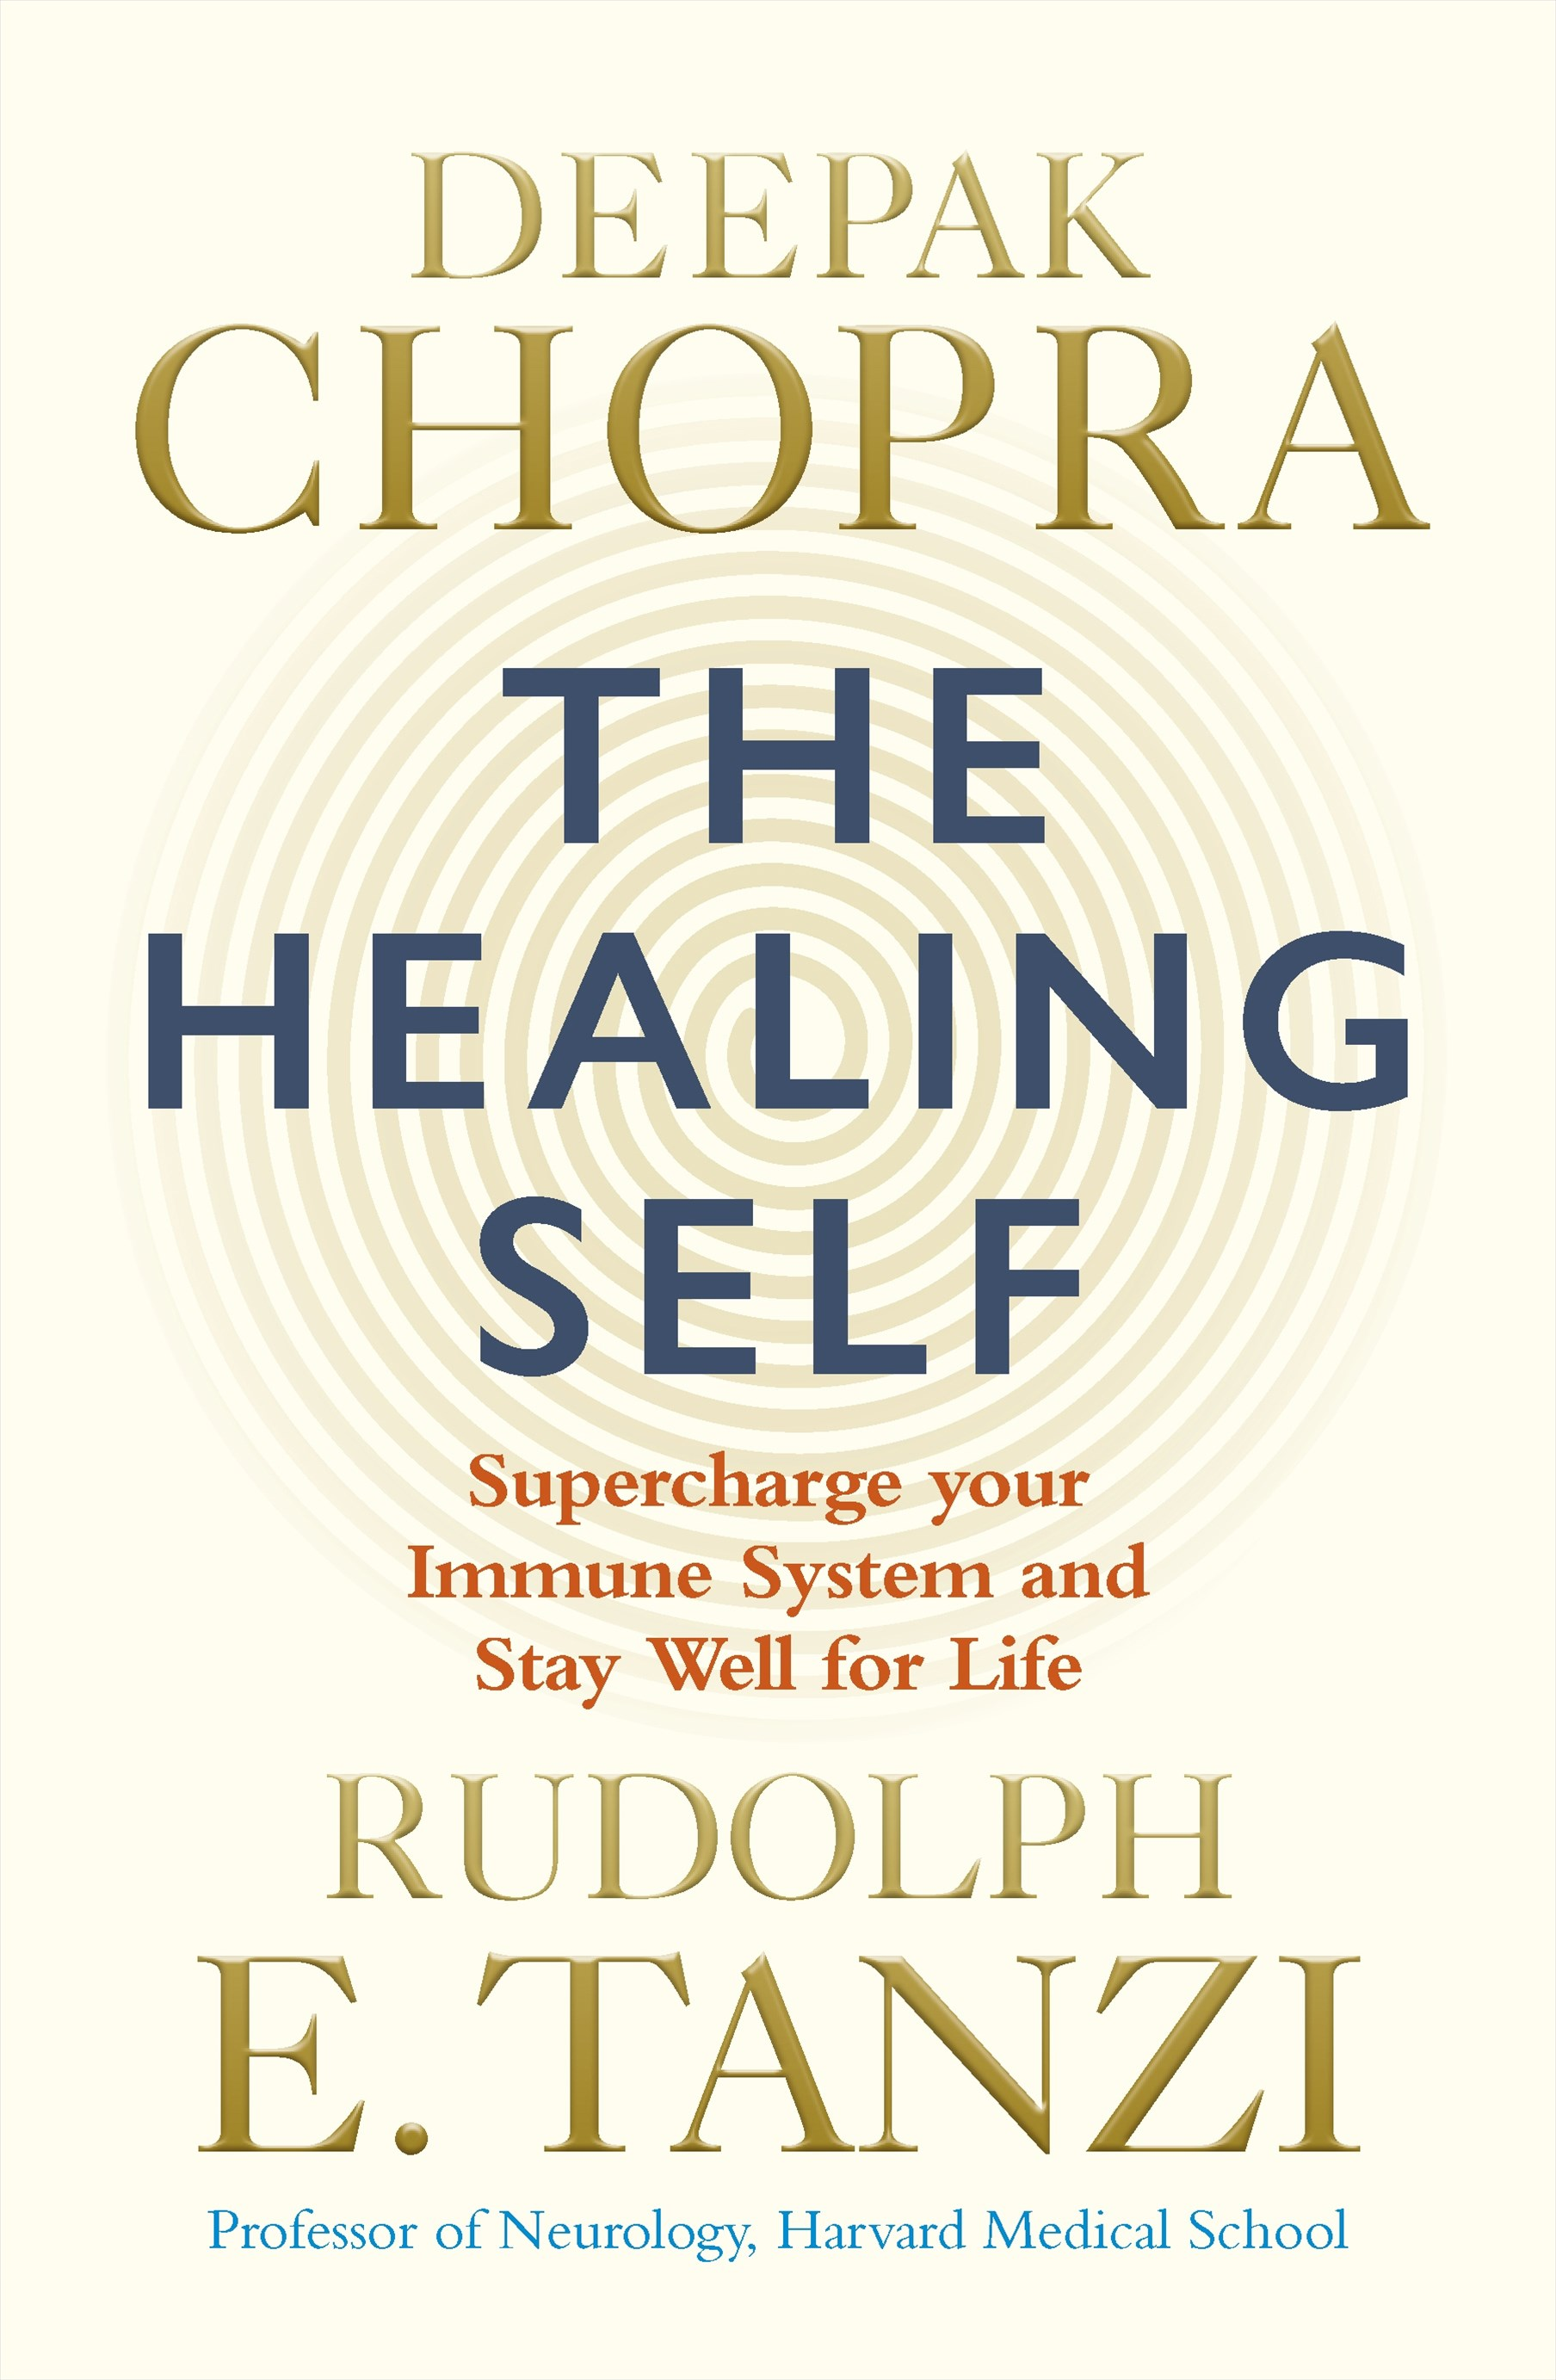 The Healing Self: Supercharge your immune system and stay well for life